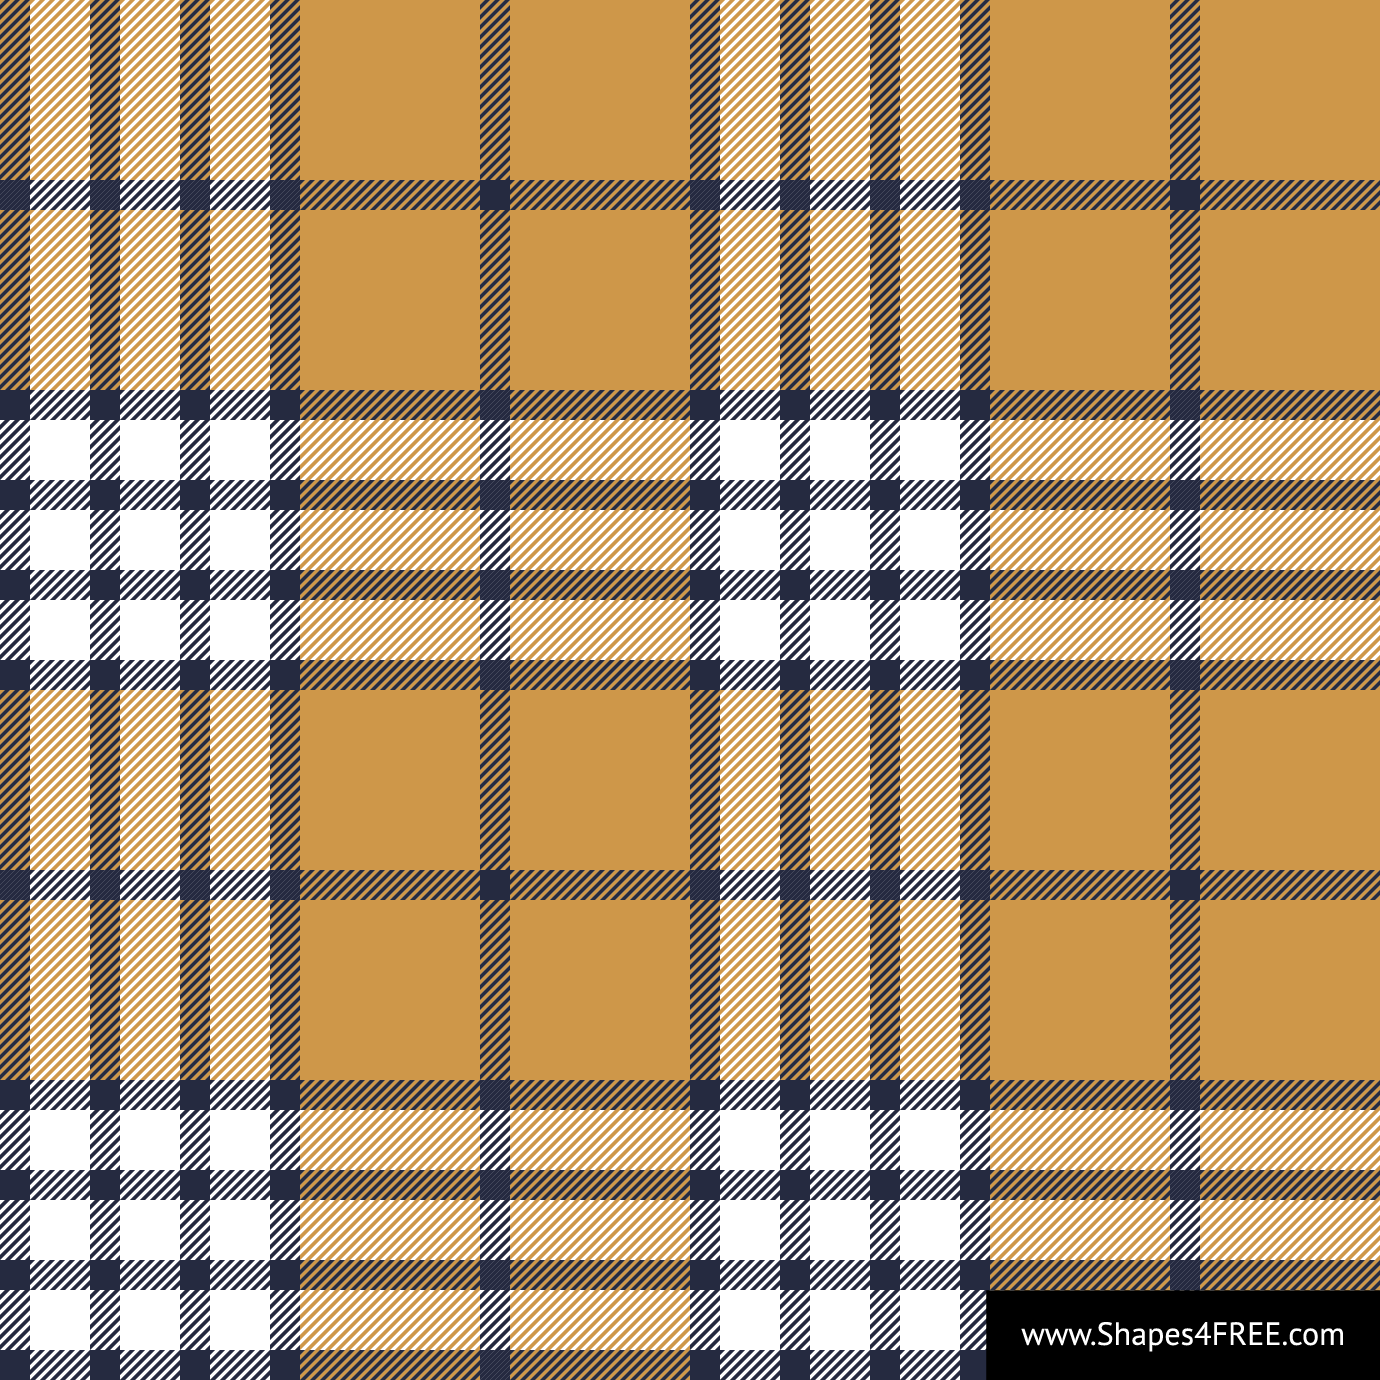 Mustard & White Scarf Check Plaid Vector Pattern (SVG)